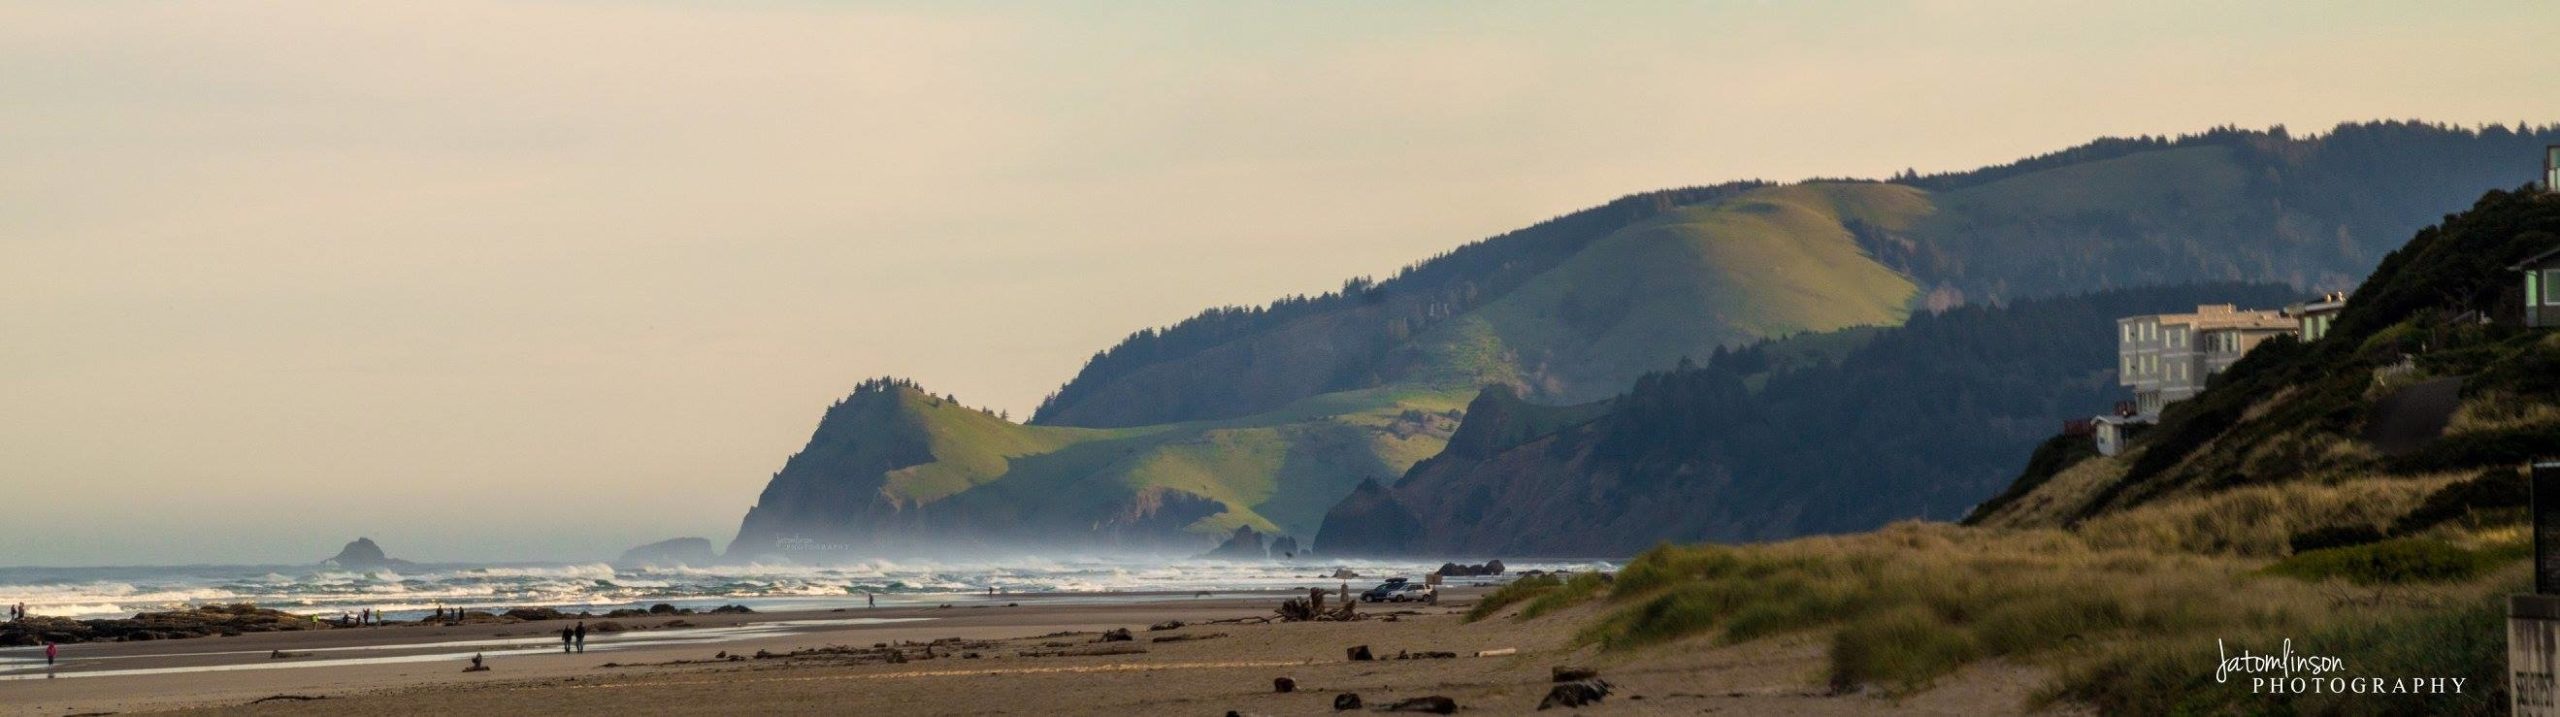 The beach and hills in Lincoln City Oregon.